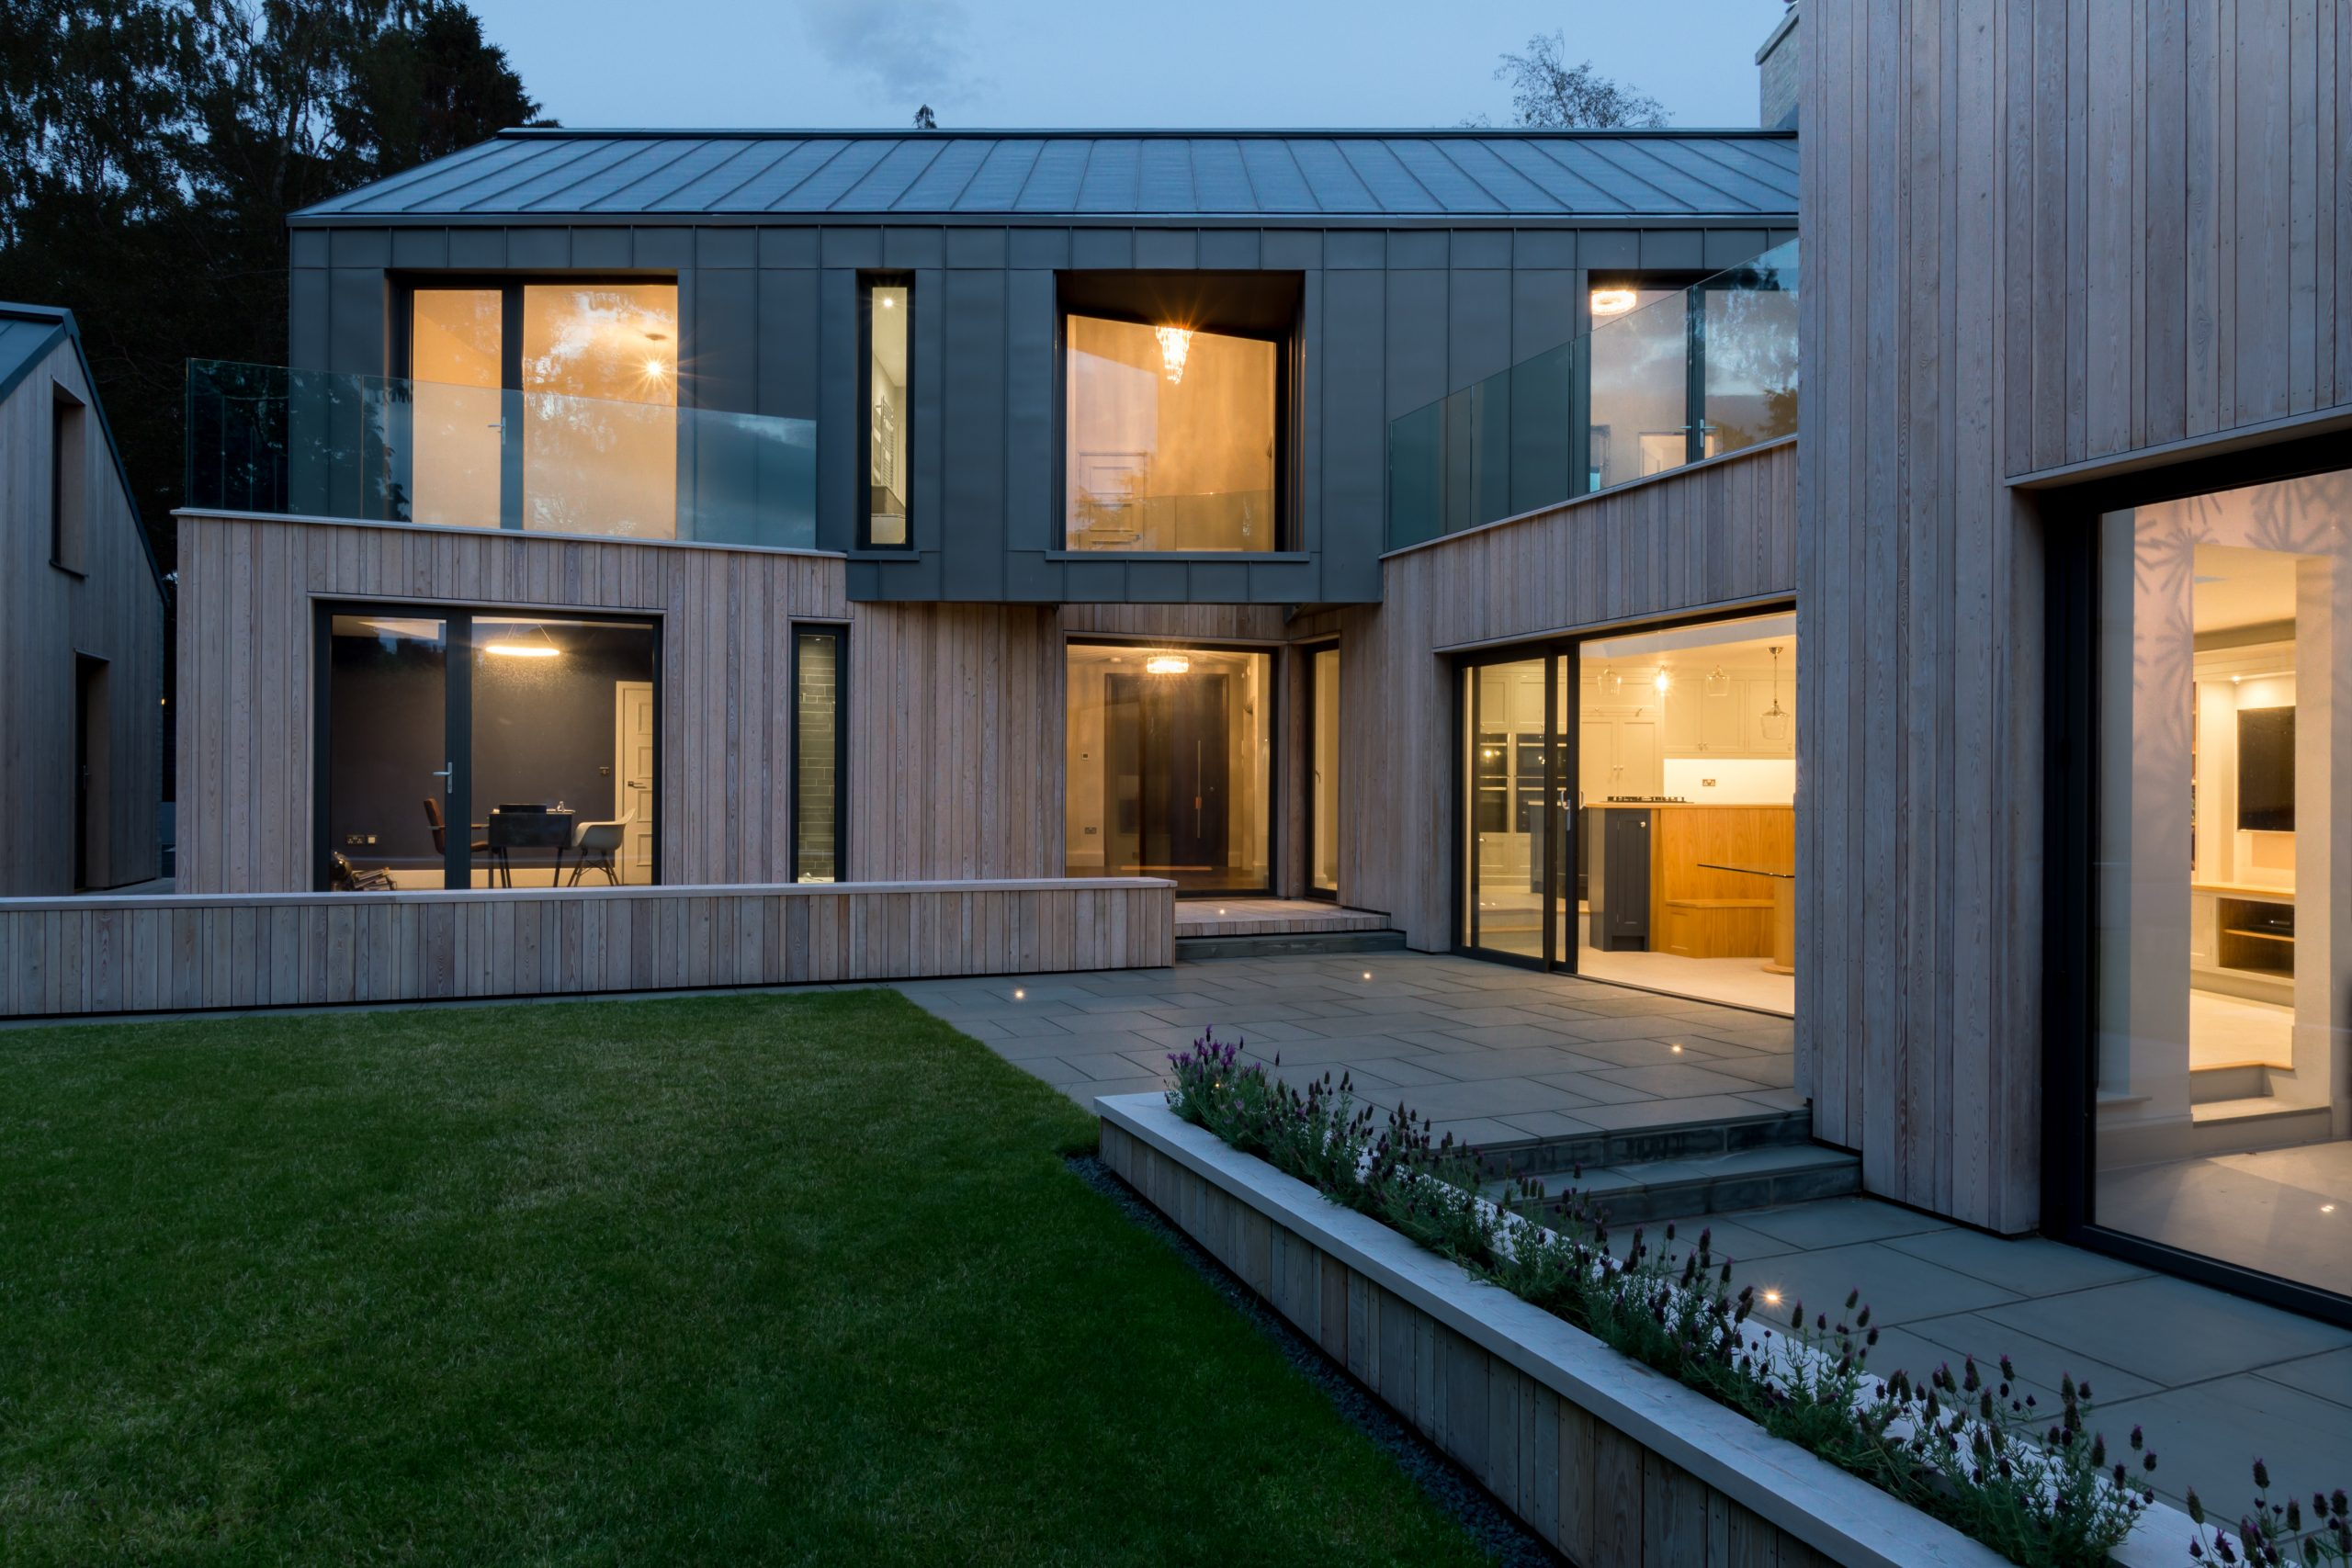 Orchard-Gap-Nightime view- rear